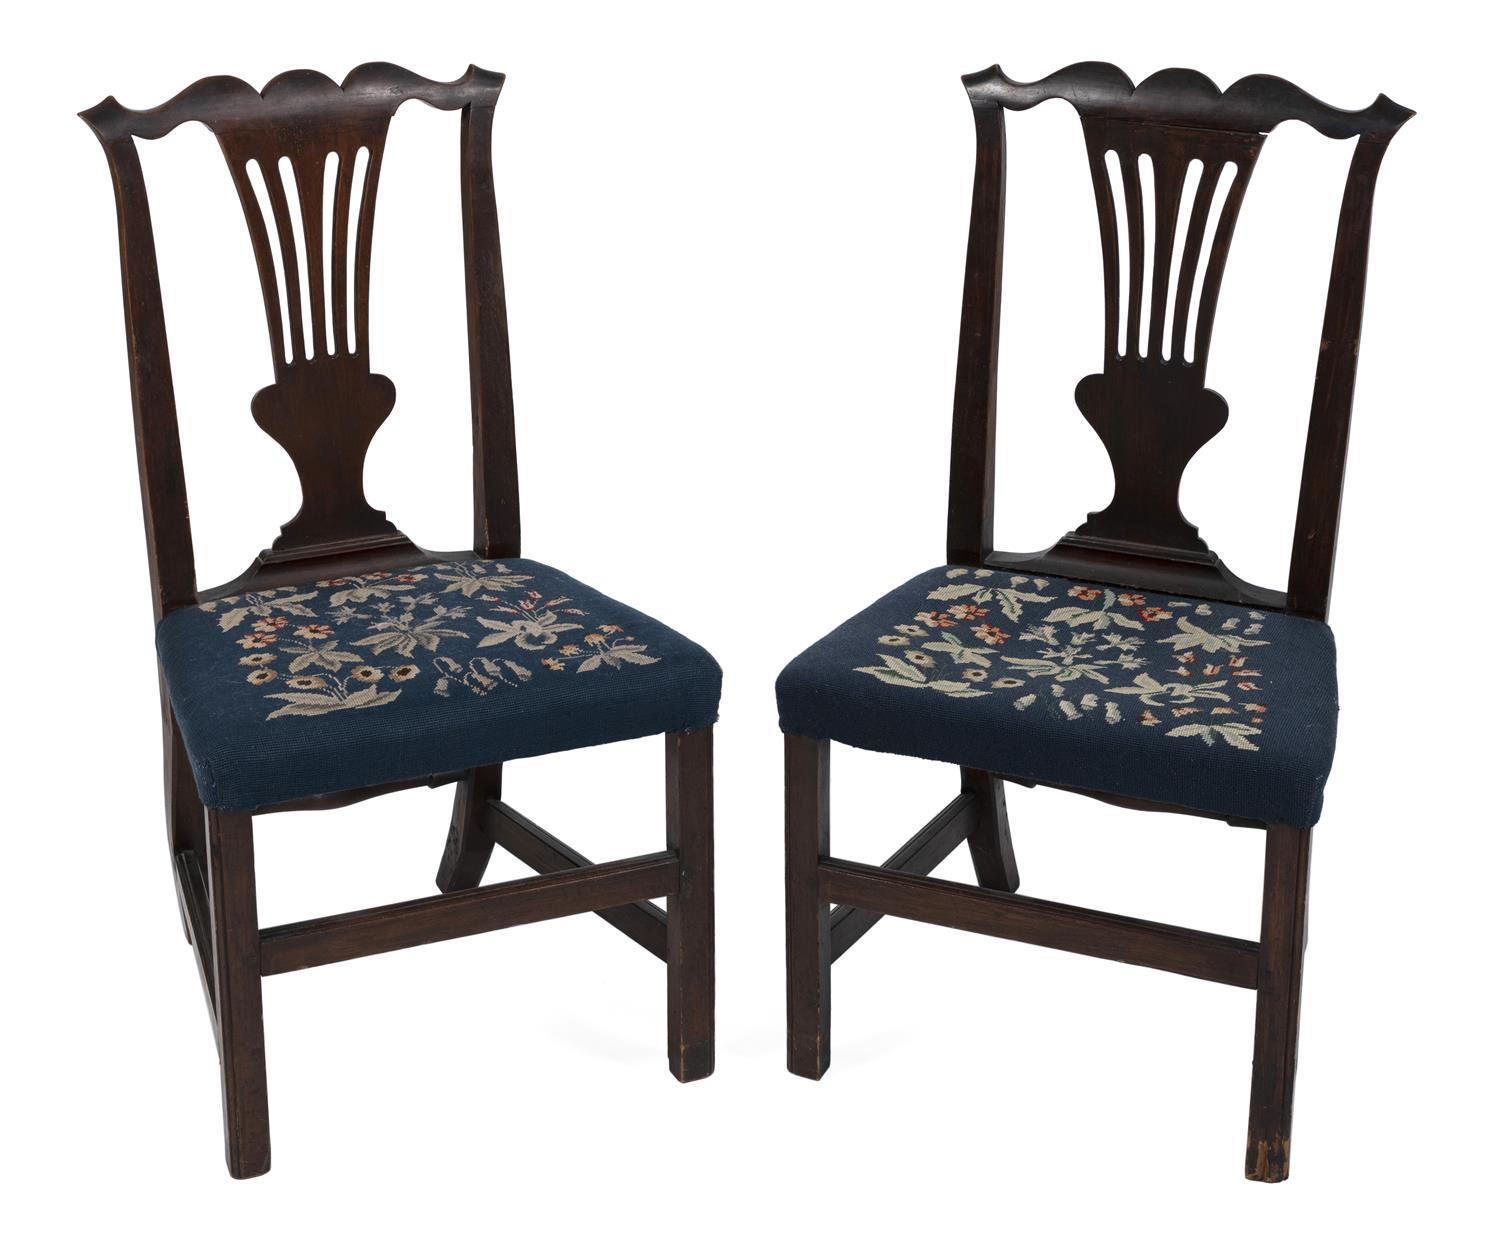 "PAIR OF HEPPLEWHITE SIDE CHAIRS Back heights 38"". Seat heights 18.5""."